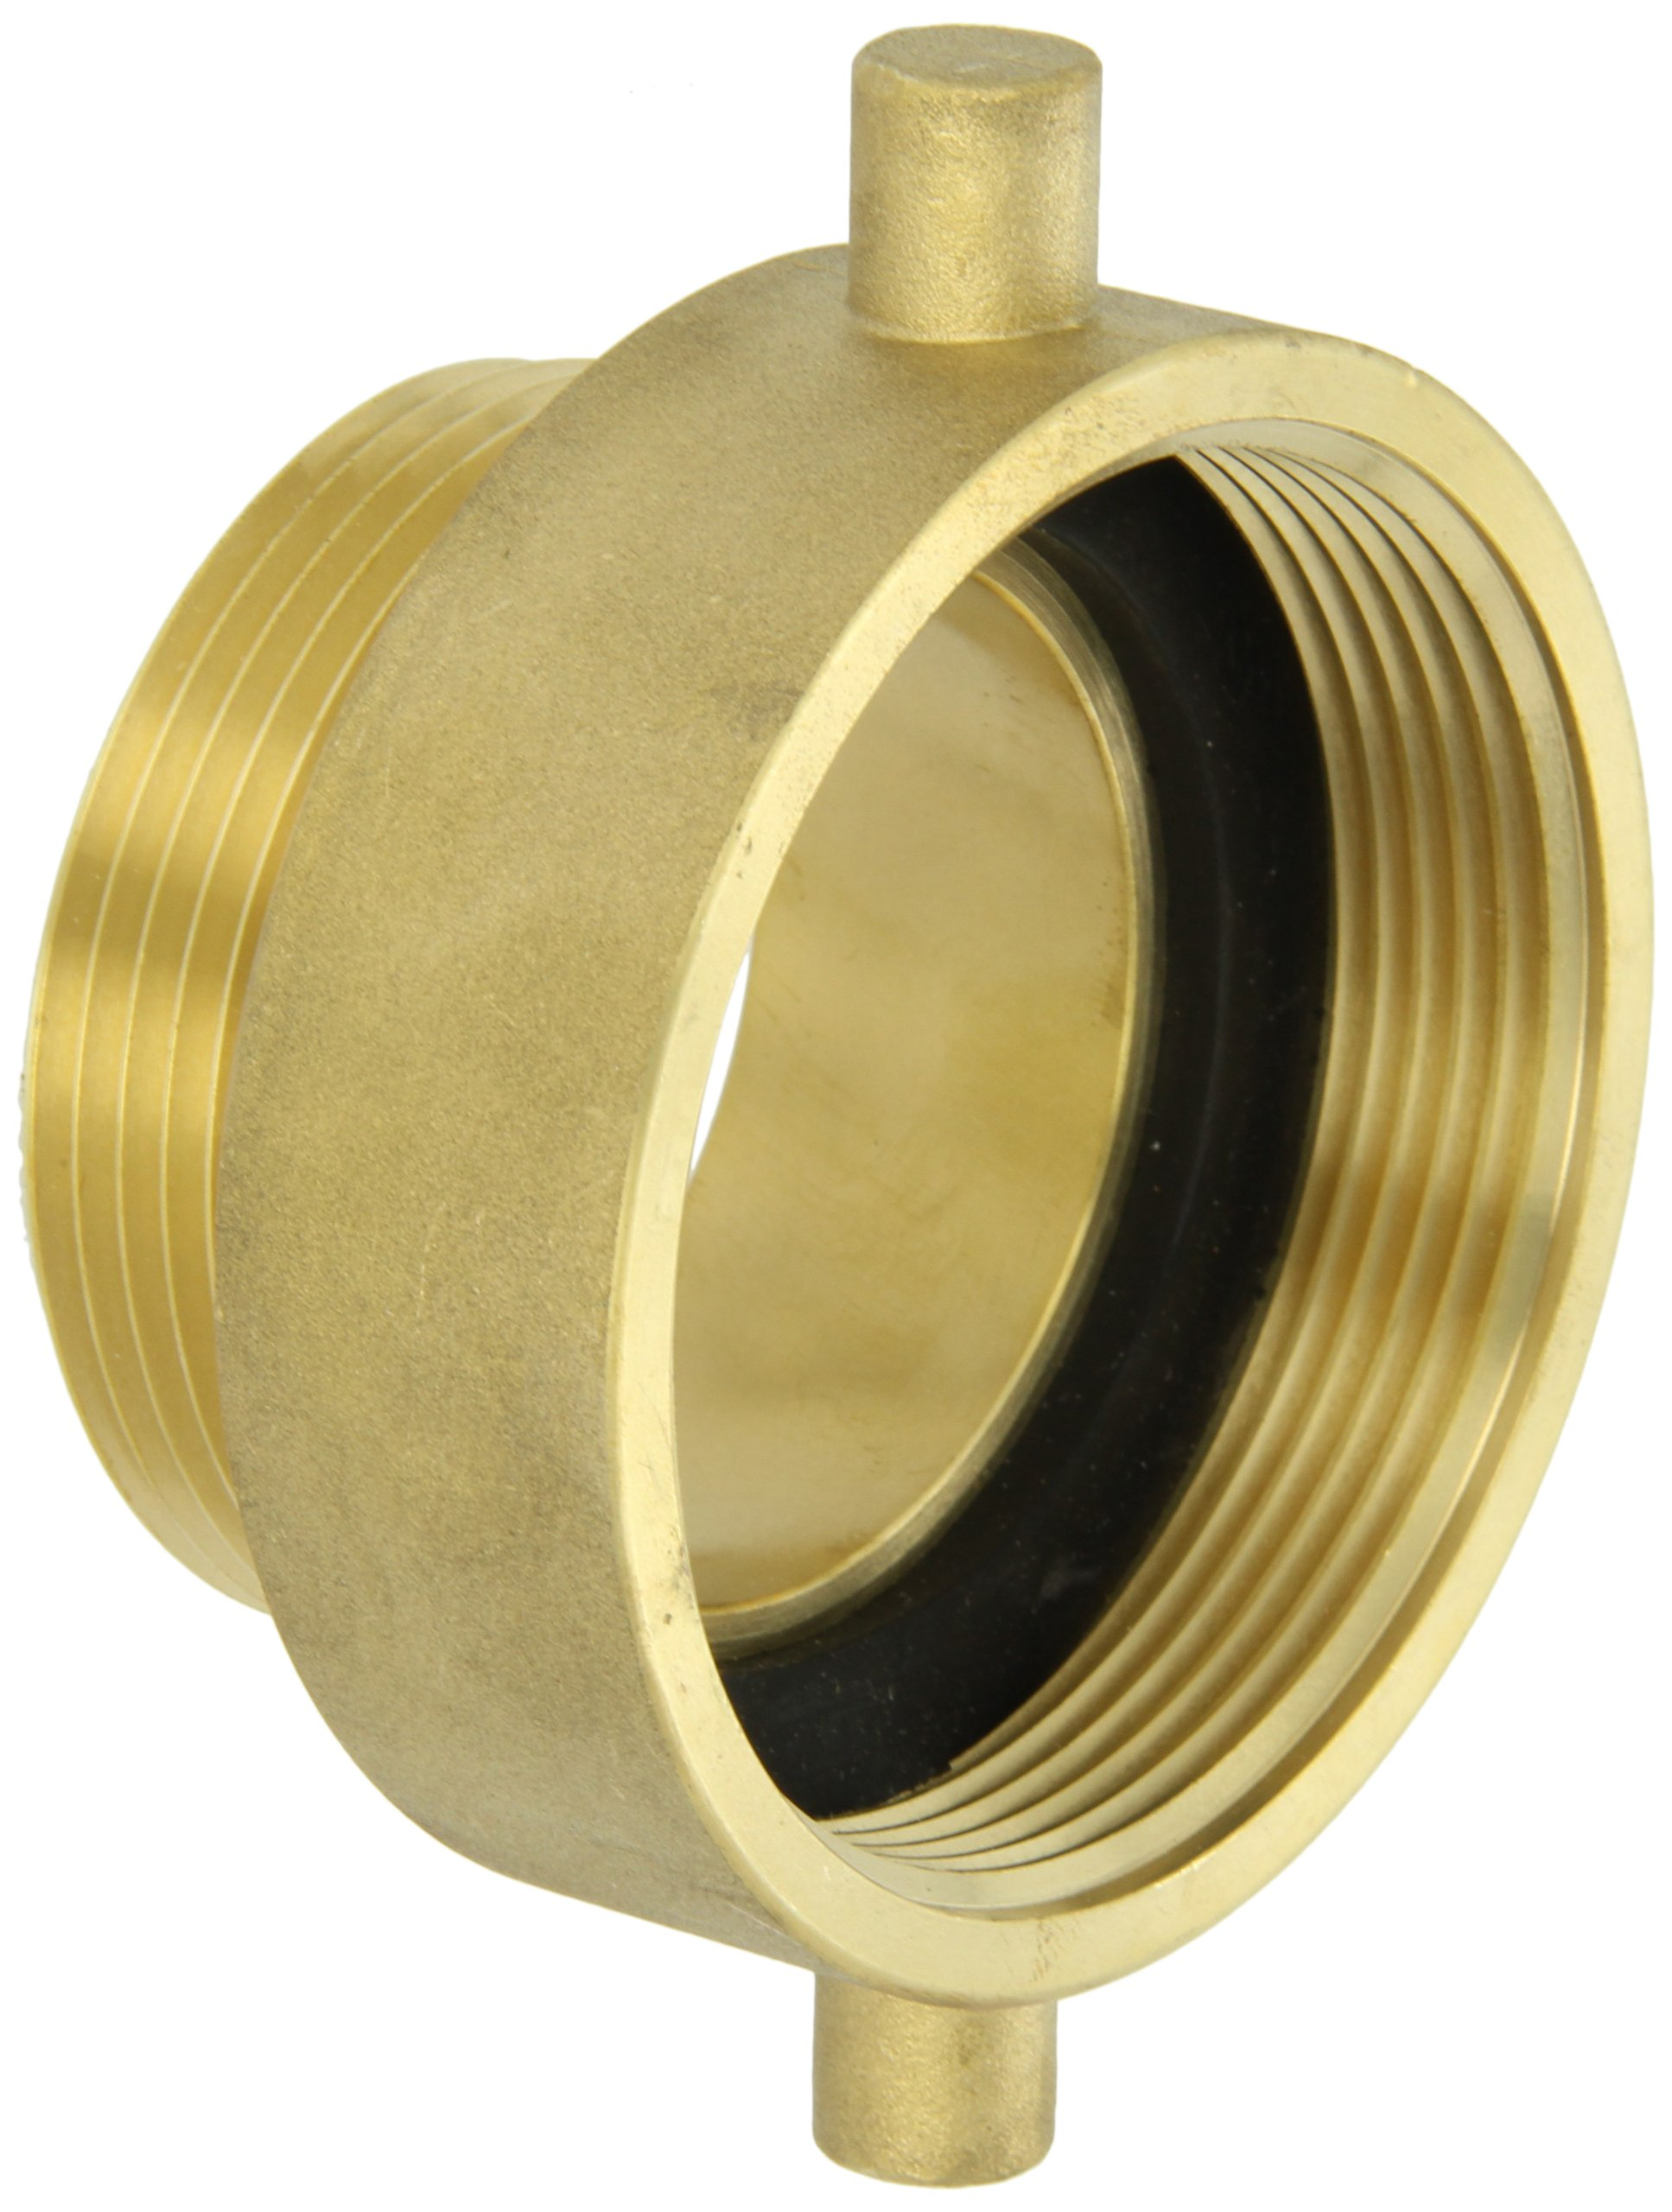 Moon 369-3022521 Brass Fire Hose Adapter, Pin Lug, 3'' NH Female x 2-1/2 NH Male